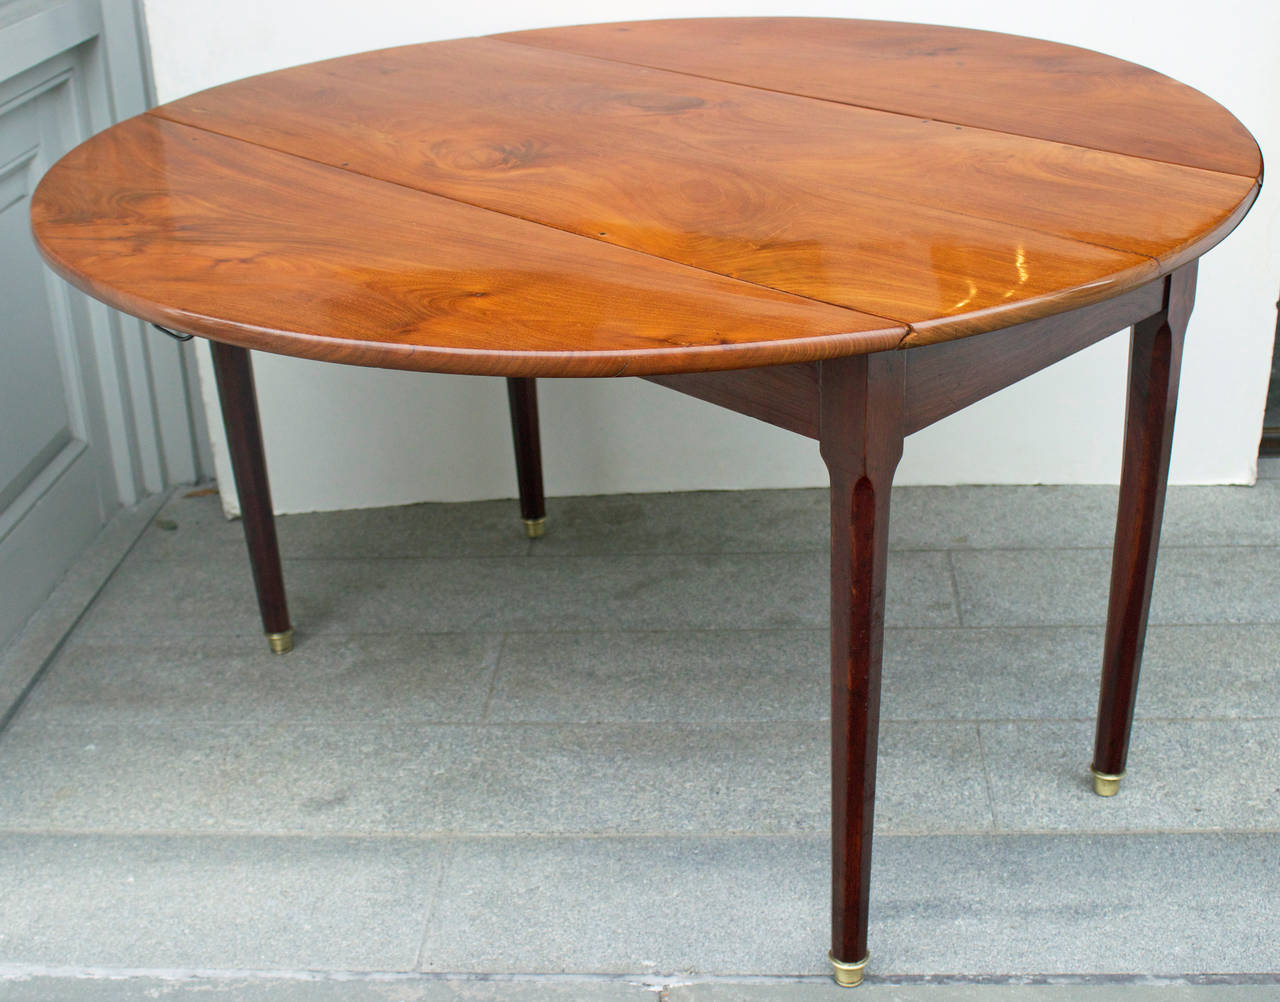 High Quality 19th Century French Mahogany Round Drop Leaf Table 2